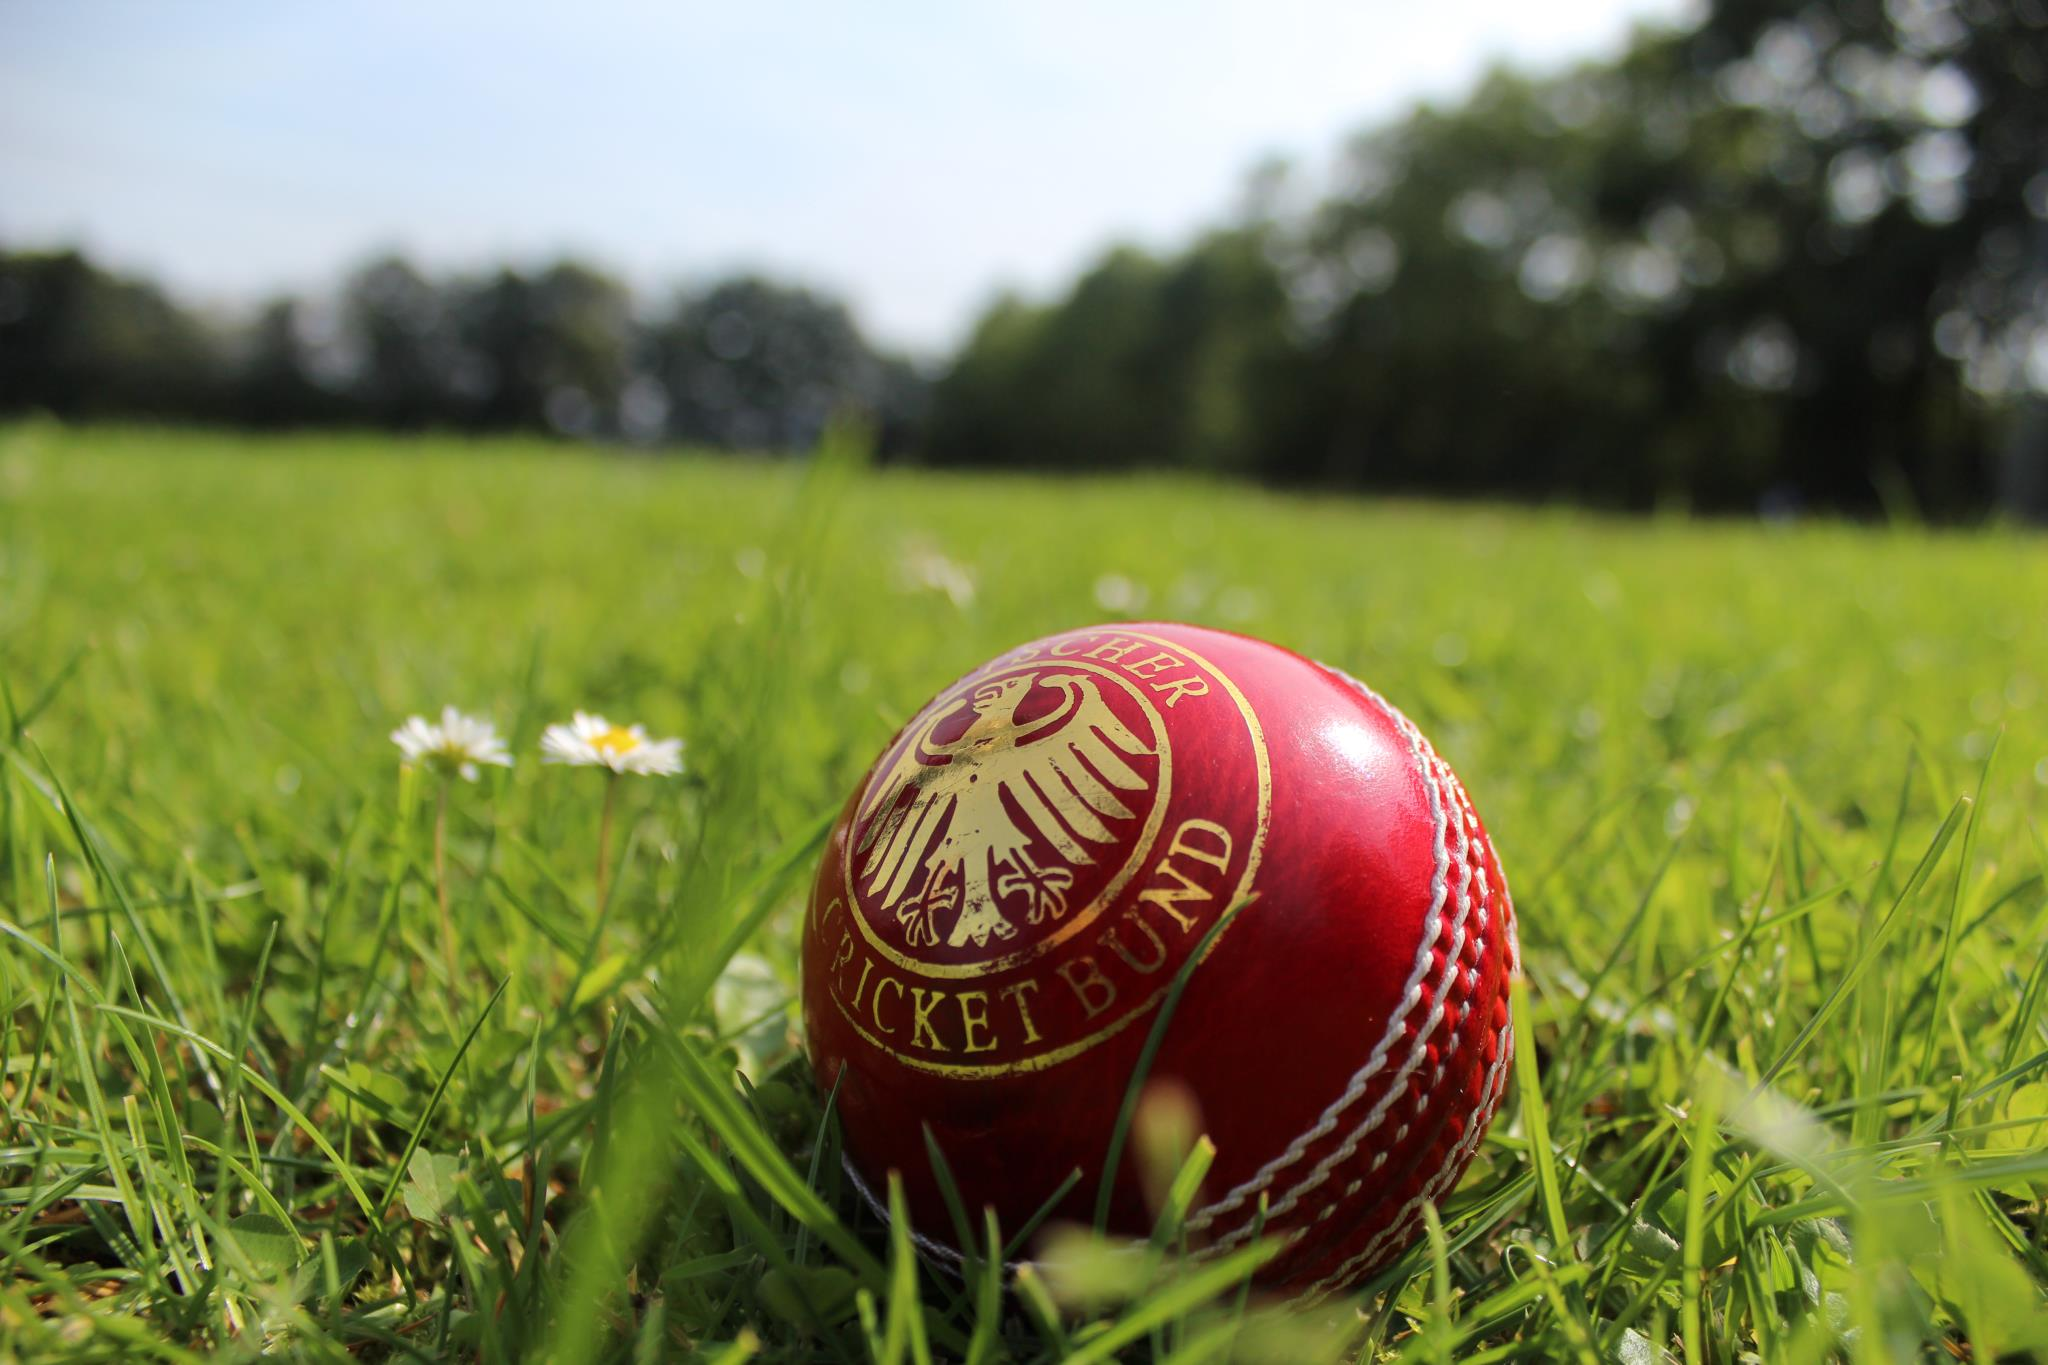 cricket ball wallpapers for mobile free download